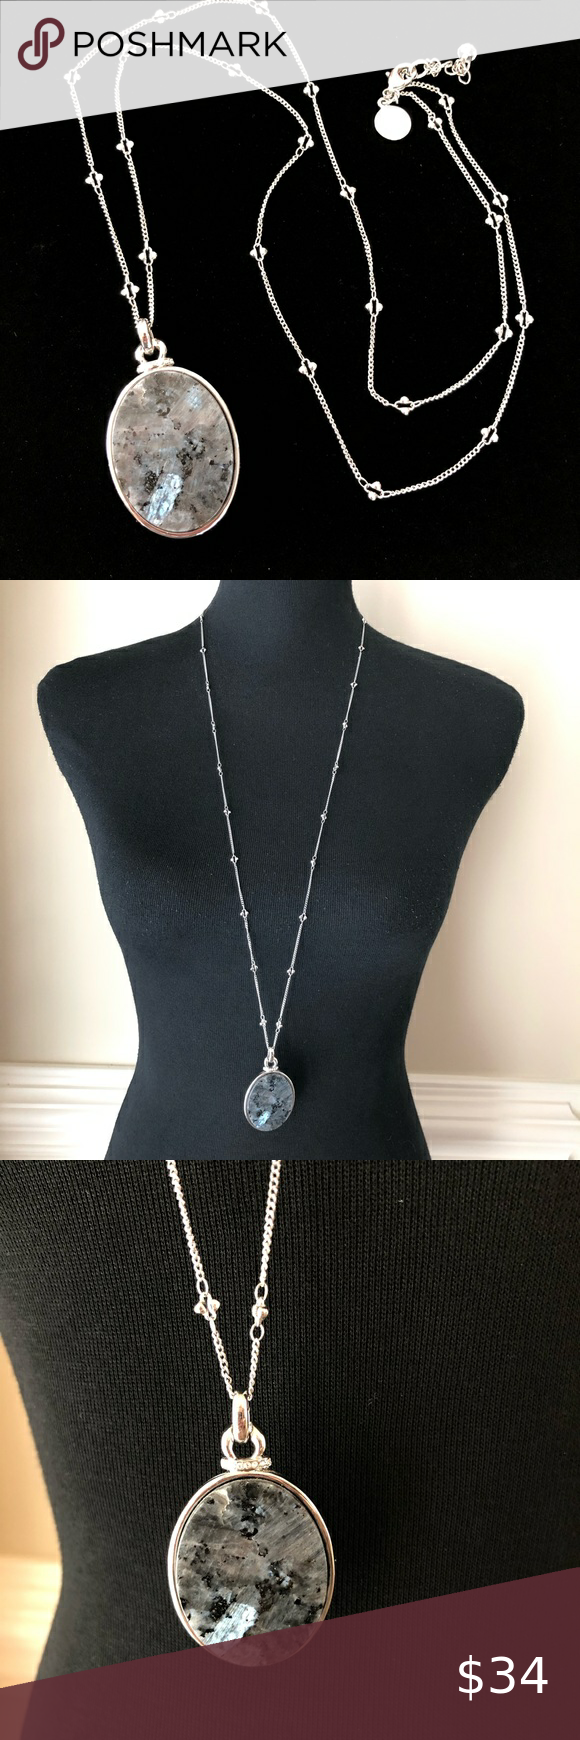 WHBM long Silver Natural Stone Pendant Necklace